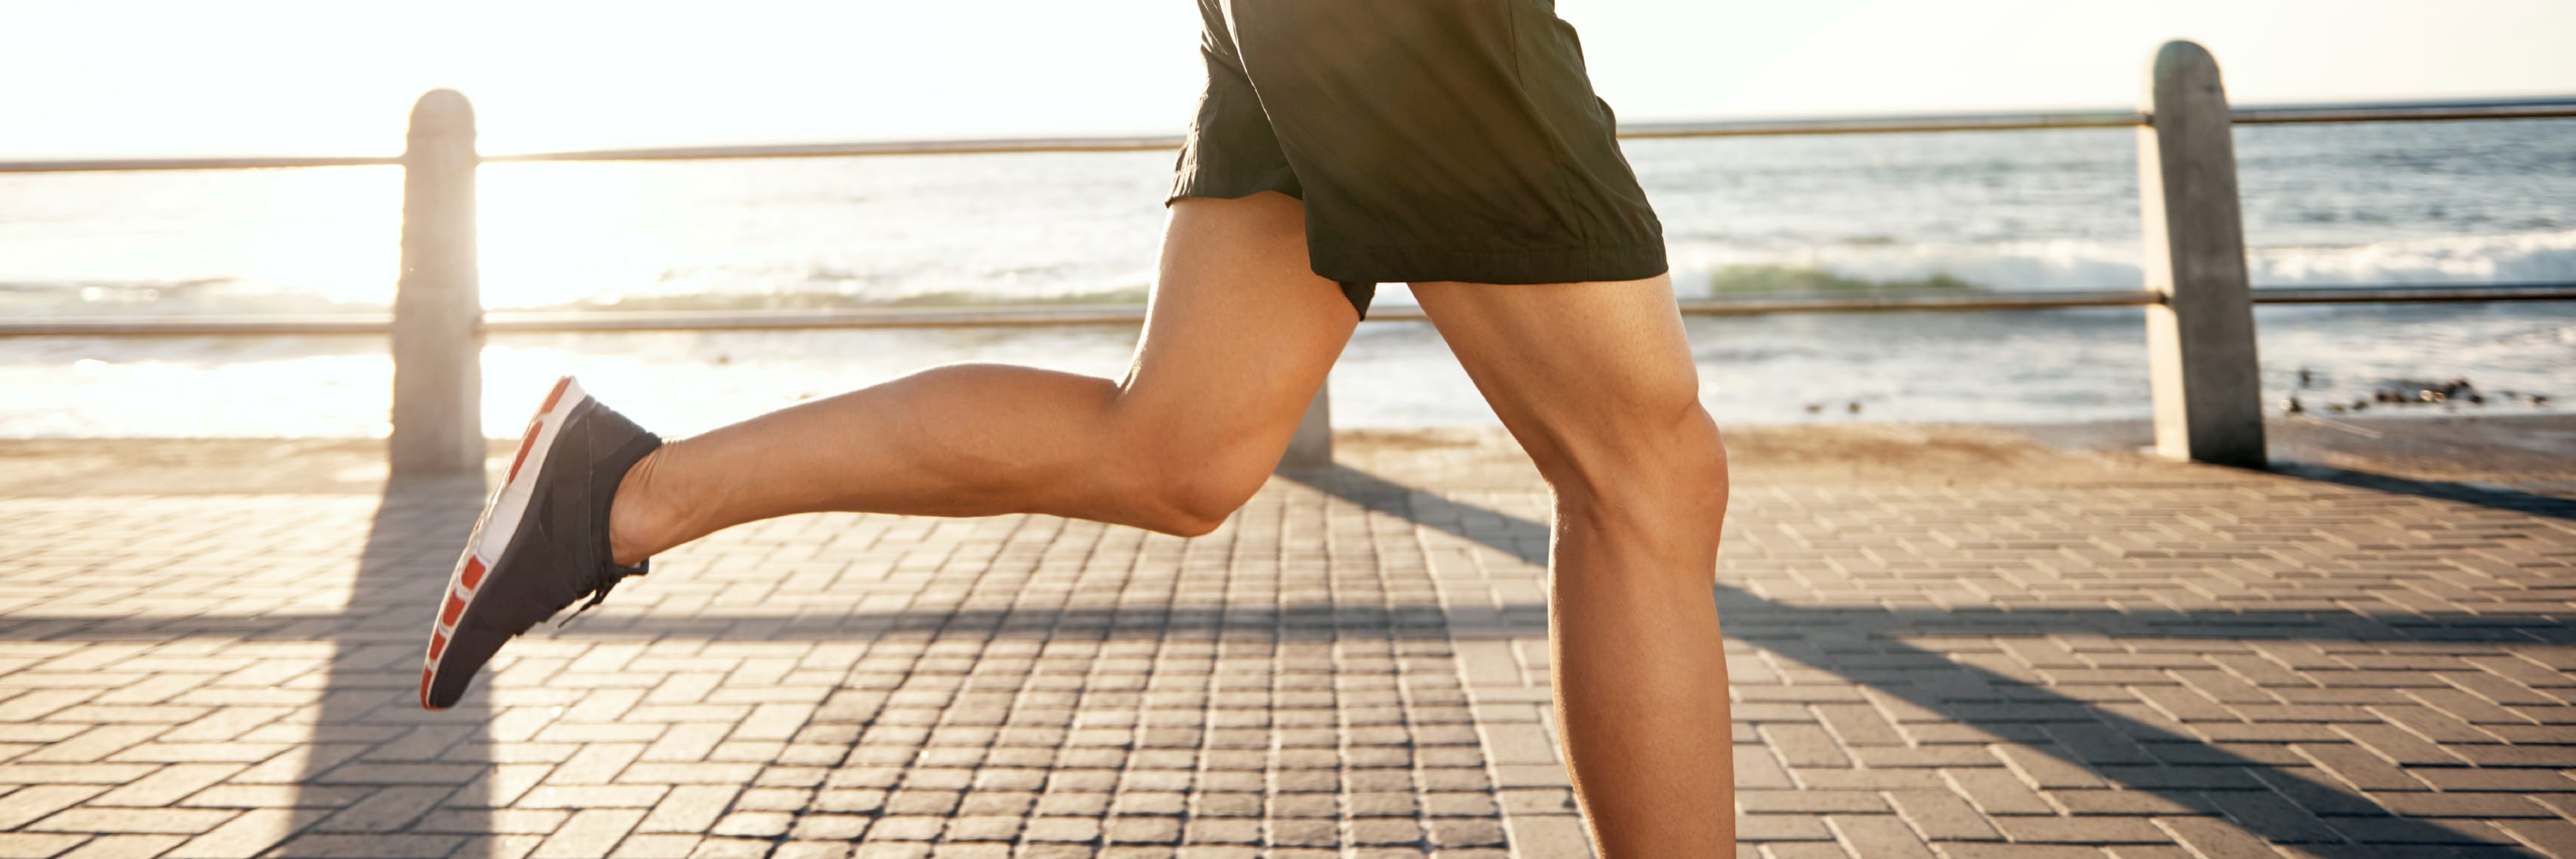 Close up of a man's legs as he runs on a paved walkway in front of water